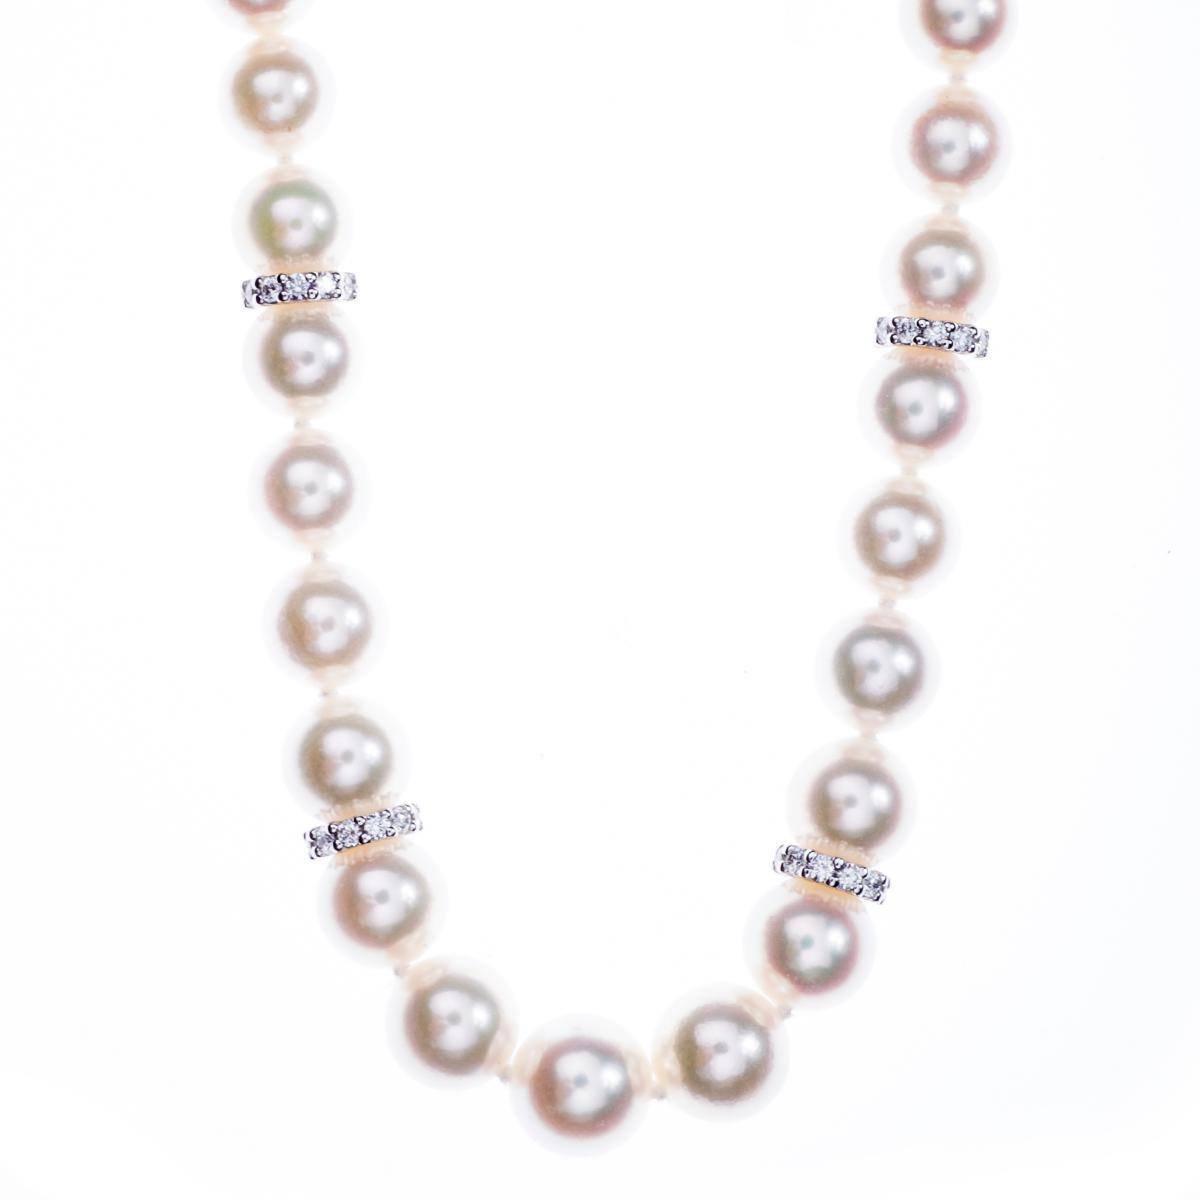 id black at diamond south sea sale exquisite mikimoto pearl jewelry necklace j l beaded pearls for necklaces